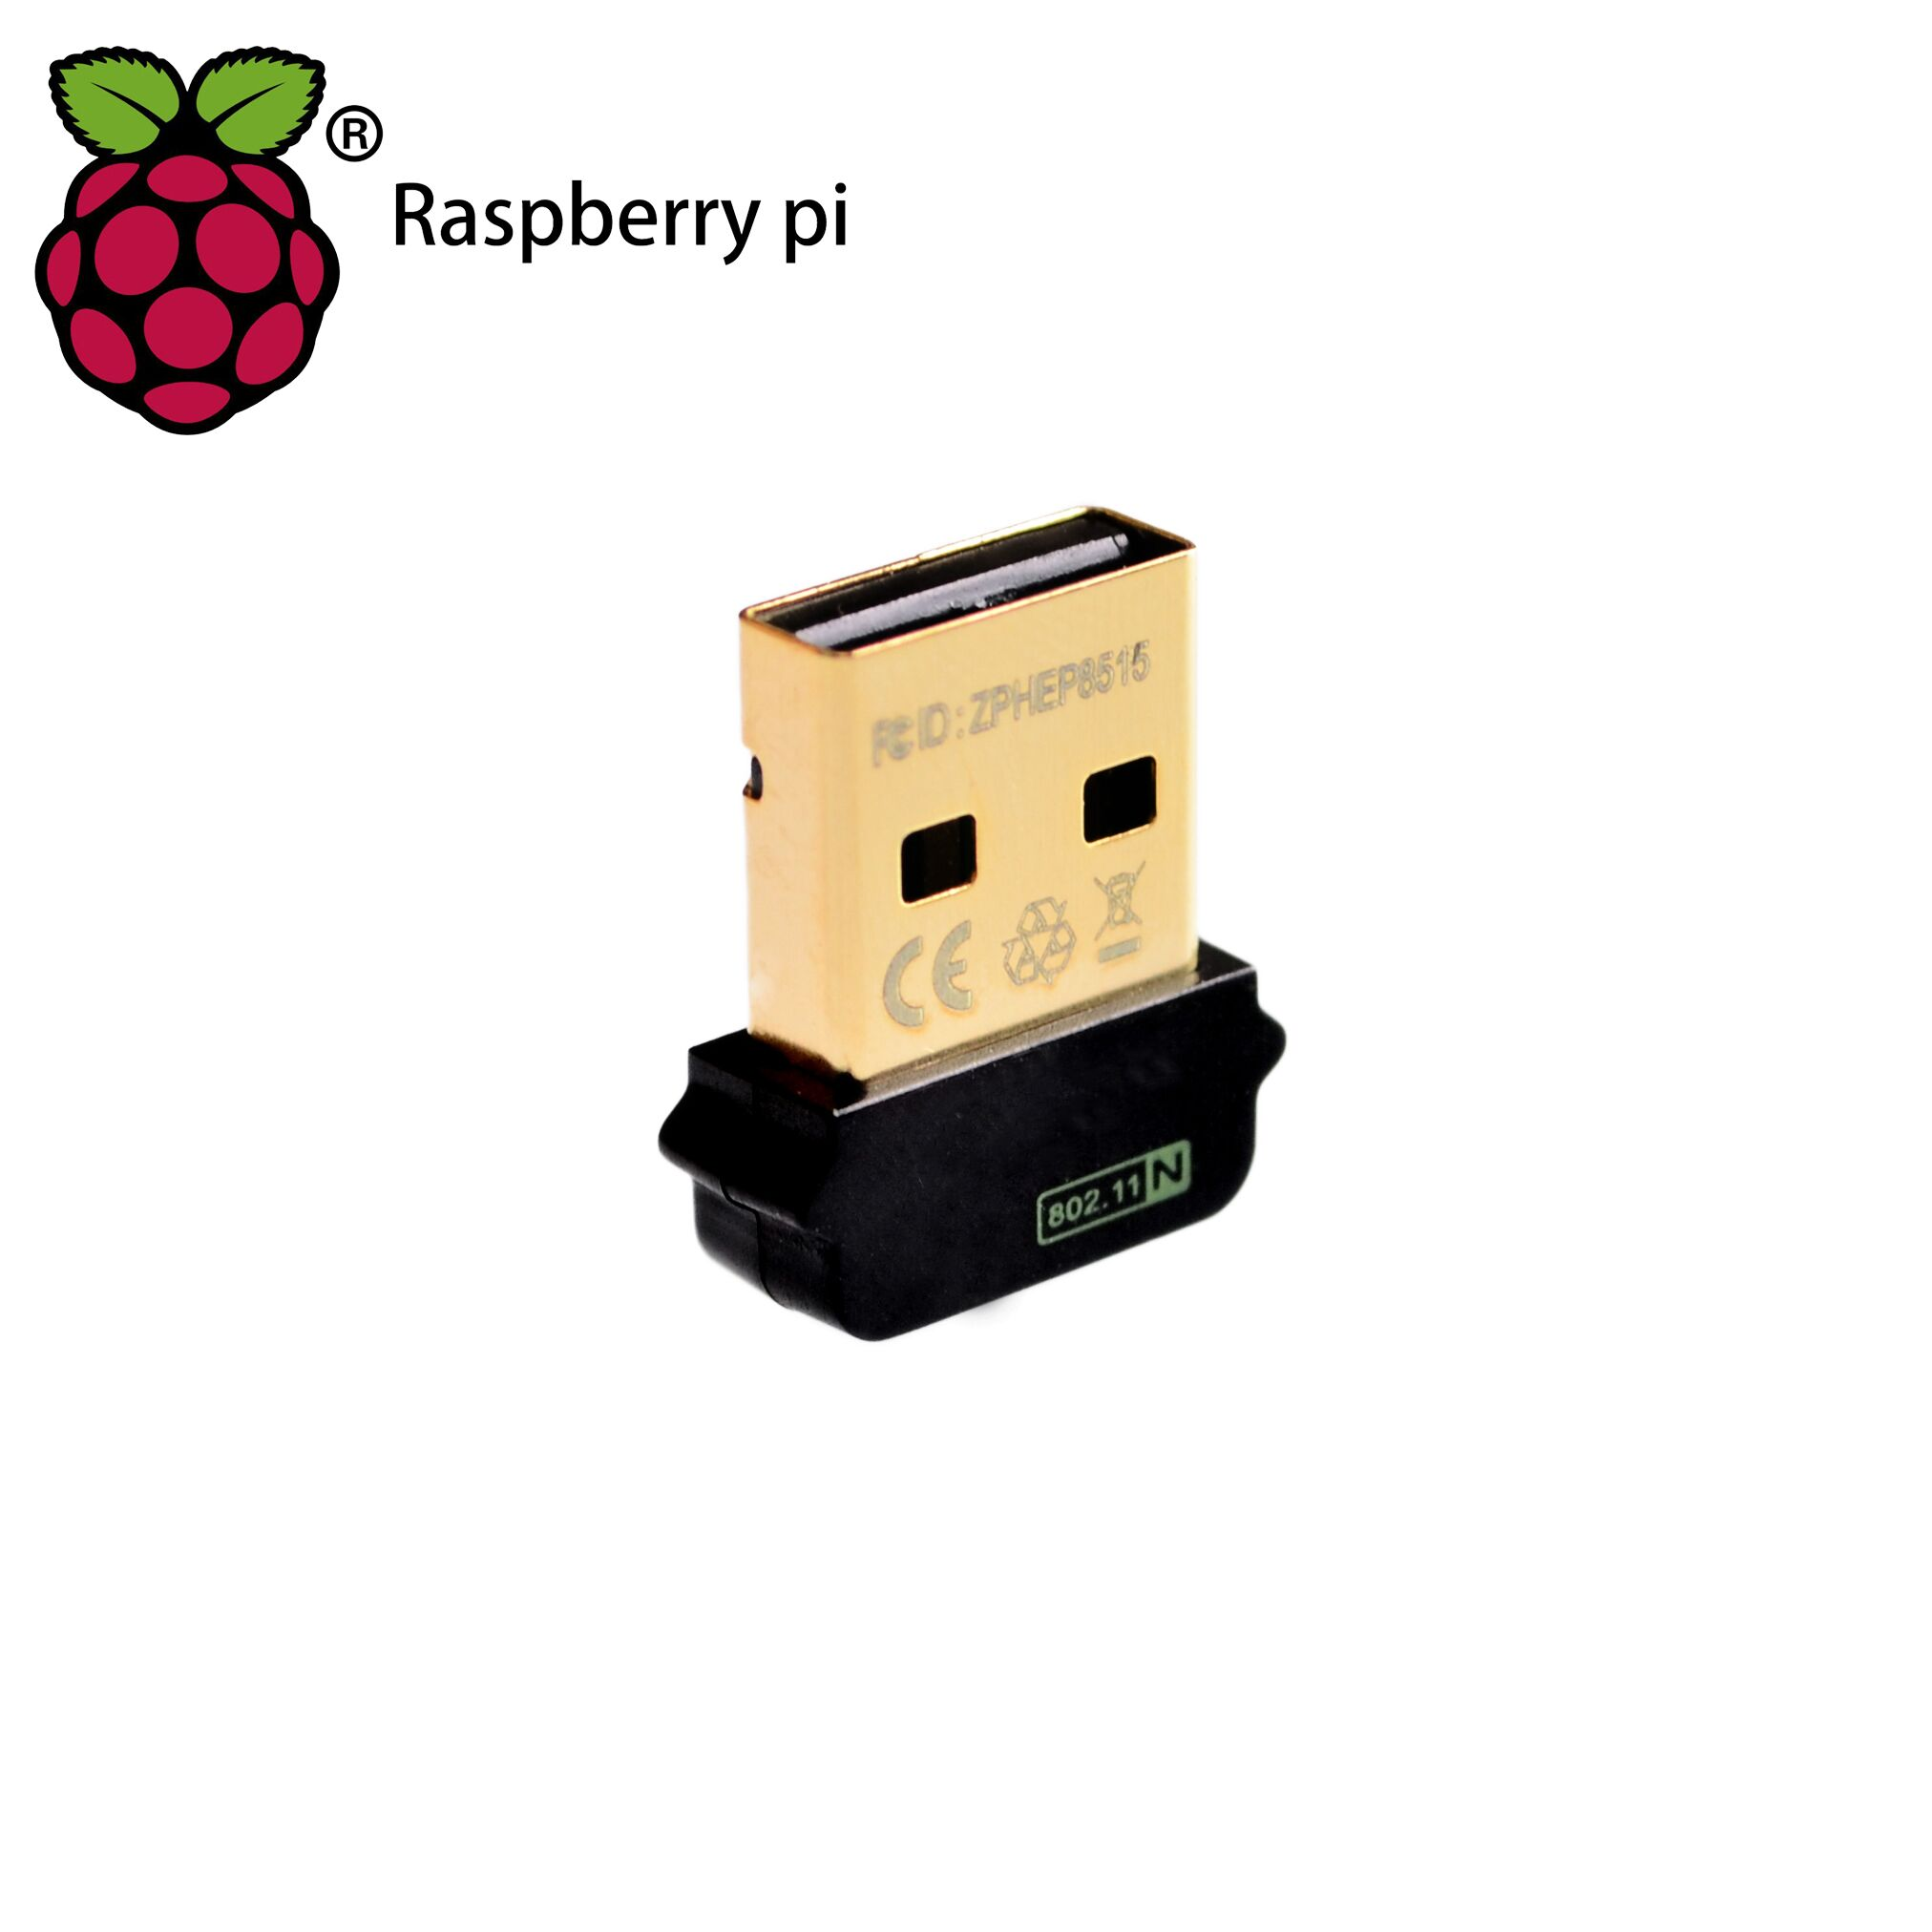 10 ШТ./ЛОТ! EP-N8508GS USB 150 150mbps Беспроводной Wi-Fi Мини 150 М Для Raspberry Pi 512 М Модель B